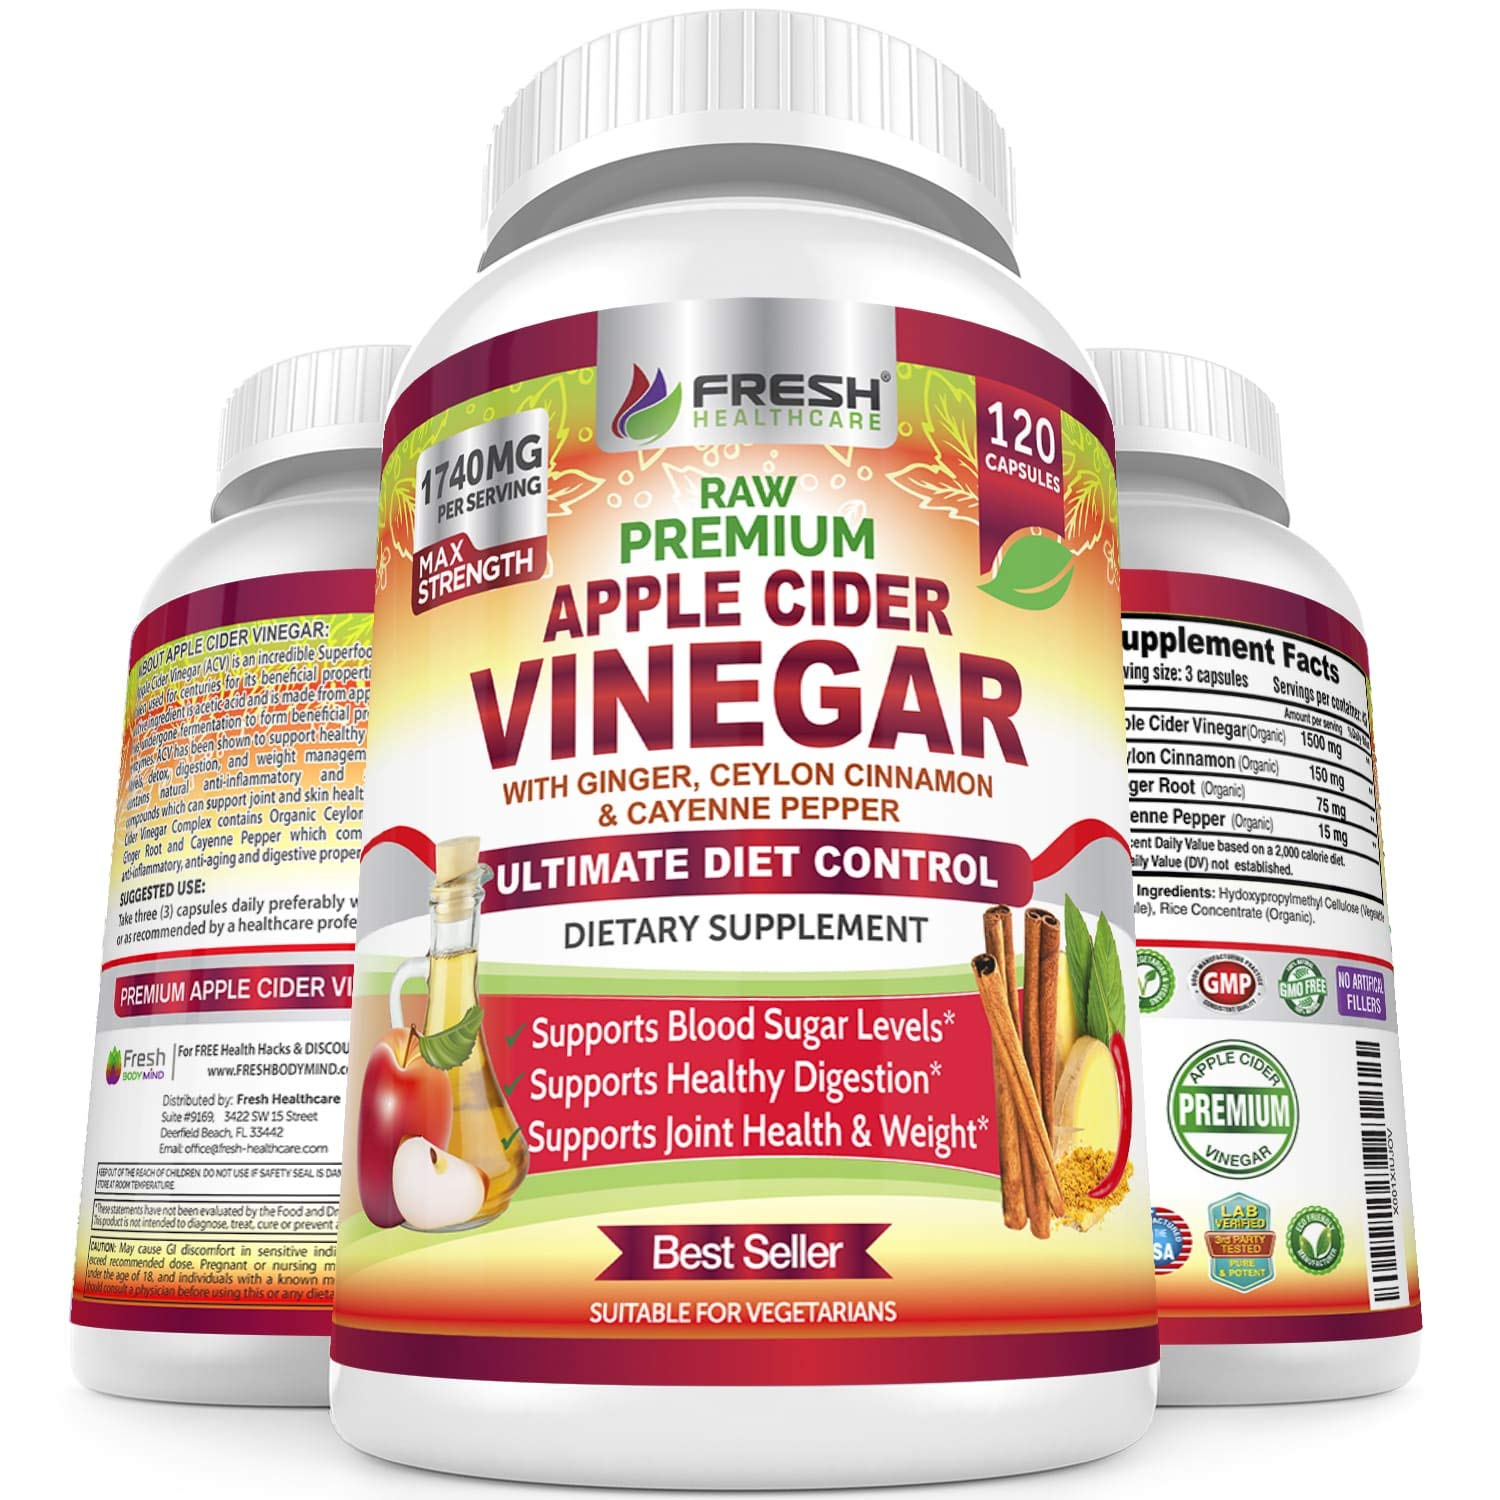 Organic Apple Cider Vinegar Pills Max 1740mg with Mother - 100% Natural & Raw with Ceylon Cinnamon, Ginger & Cayenne Pepper - Ideal for Healthy Blood Sugar, Detox & Digestion-120 Vegan Capsules